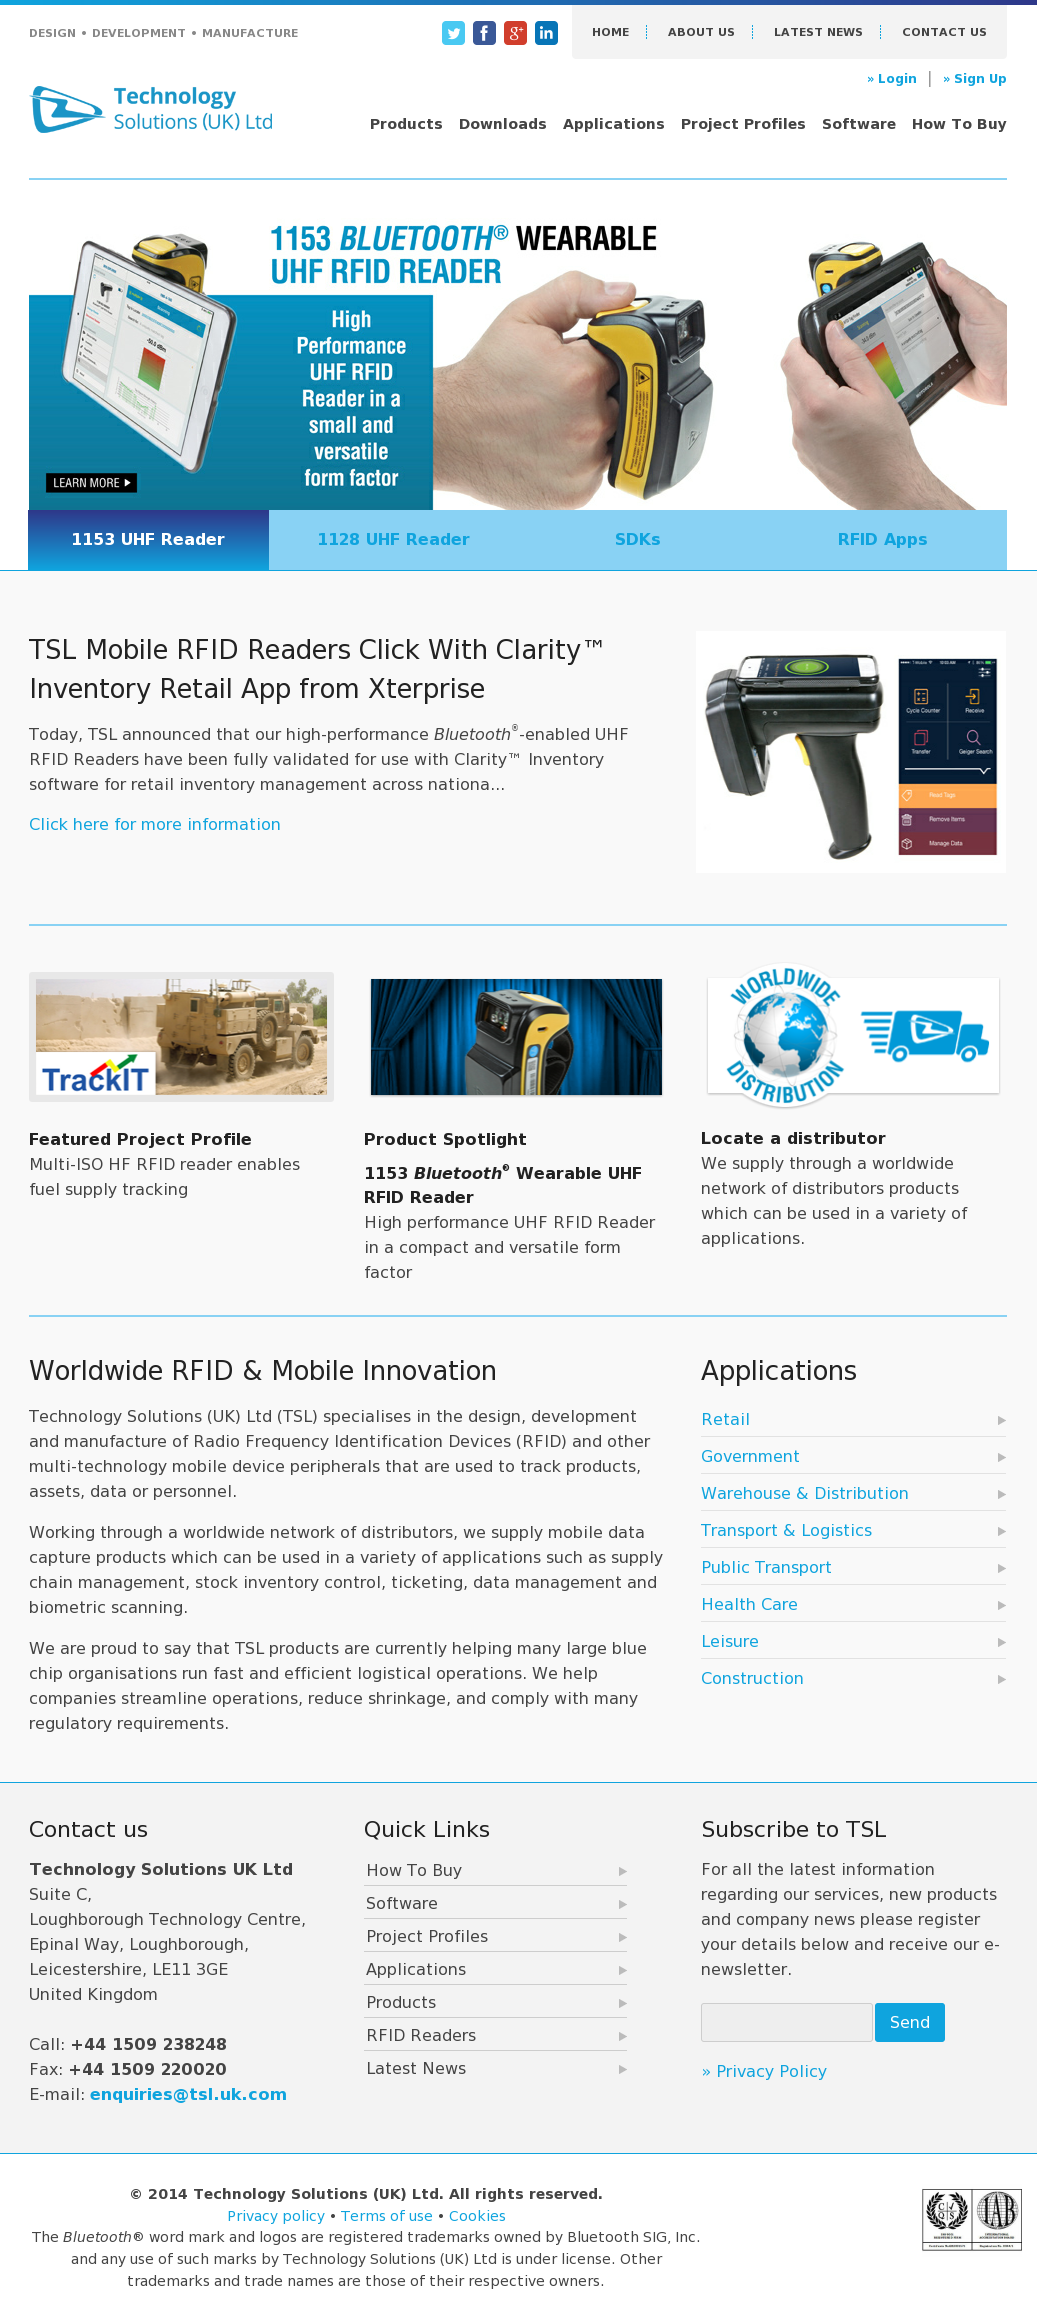 Owler Reports - Press Release: Technology Solutions : TSL